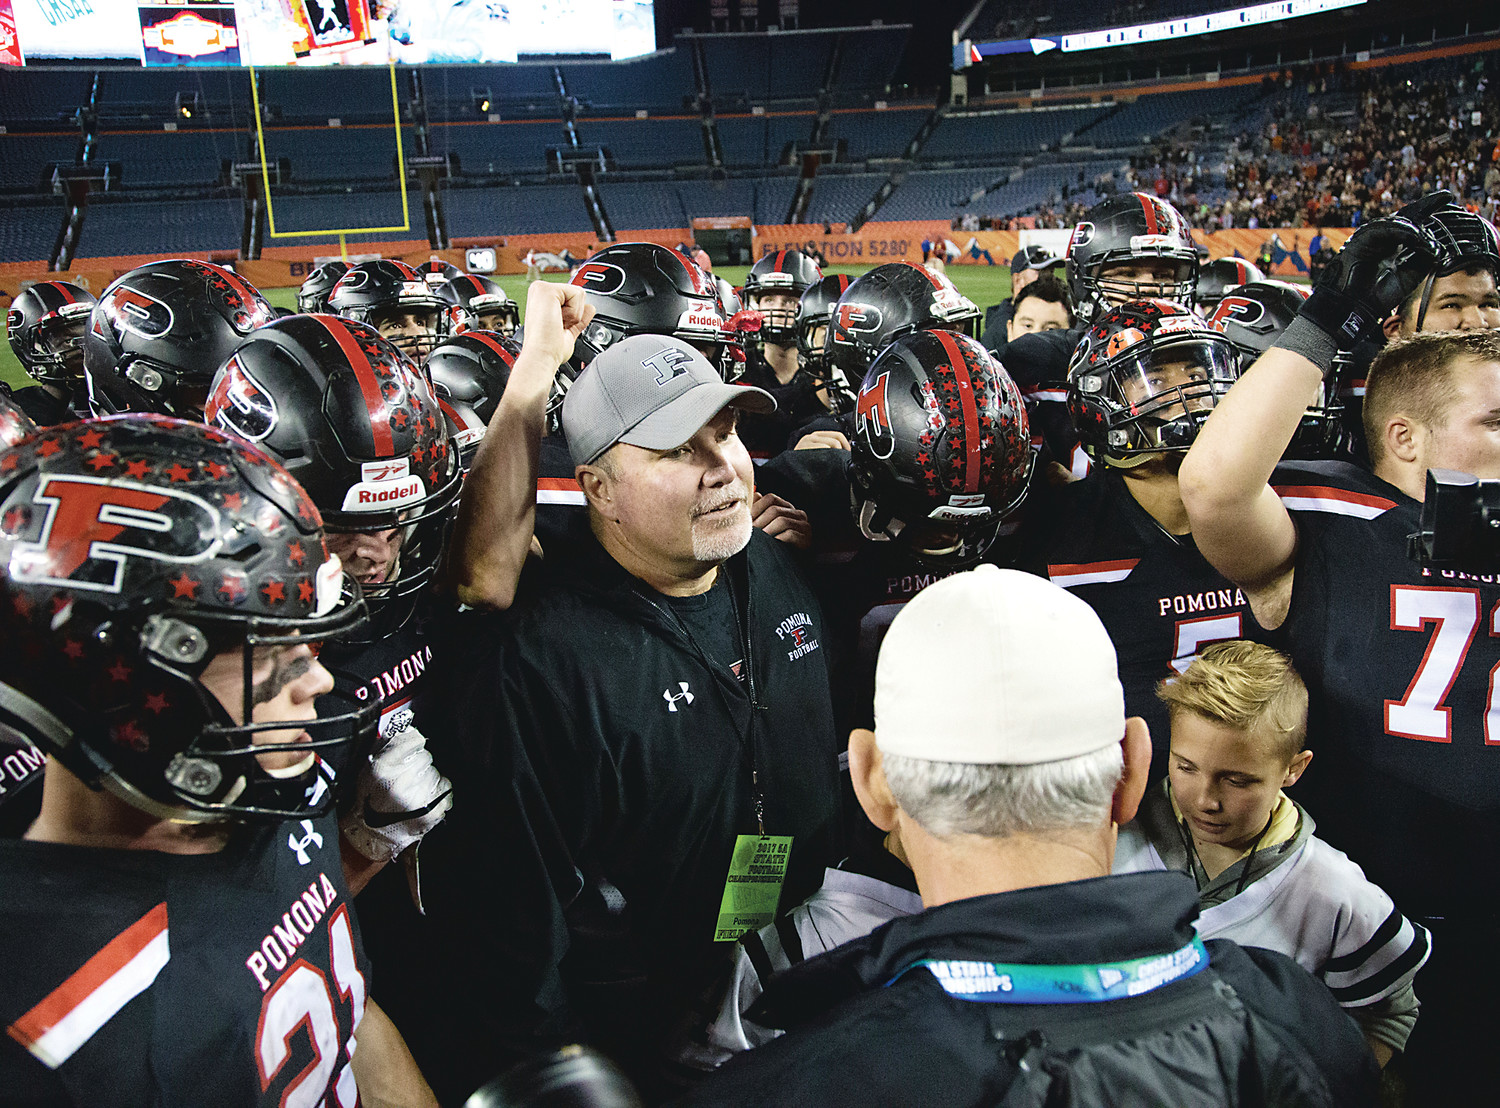 Pomona coach Jay Madden is surrounded by his players after the Panthers' 56-49 victory over Eaglecrest on Dec. 2 at Mile High Stadium. The game was the highest scoring Class 5A football state championship game in the state's history.